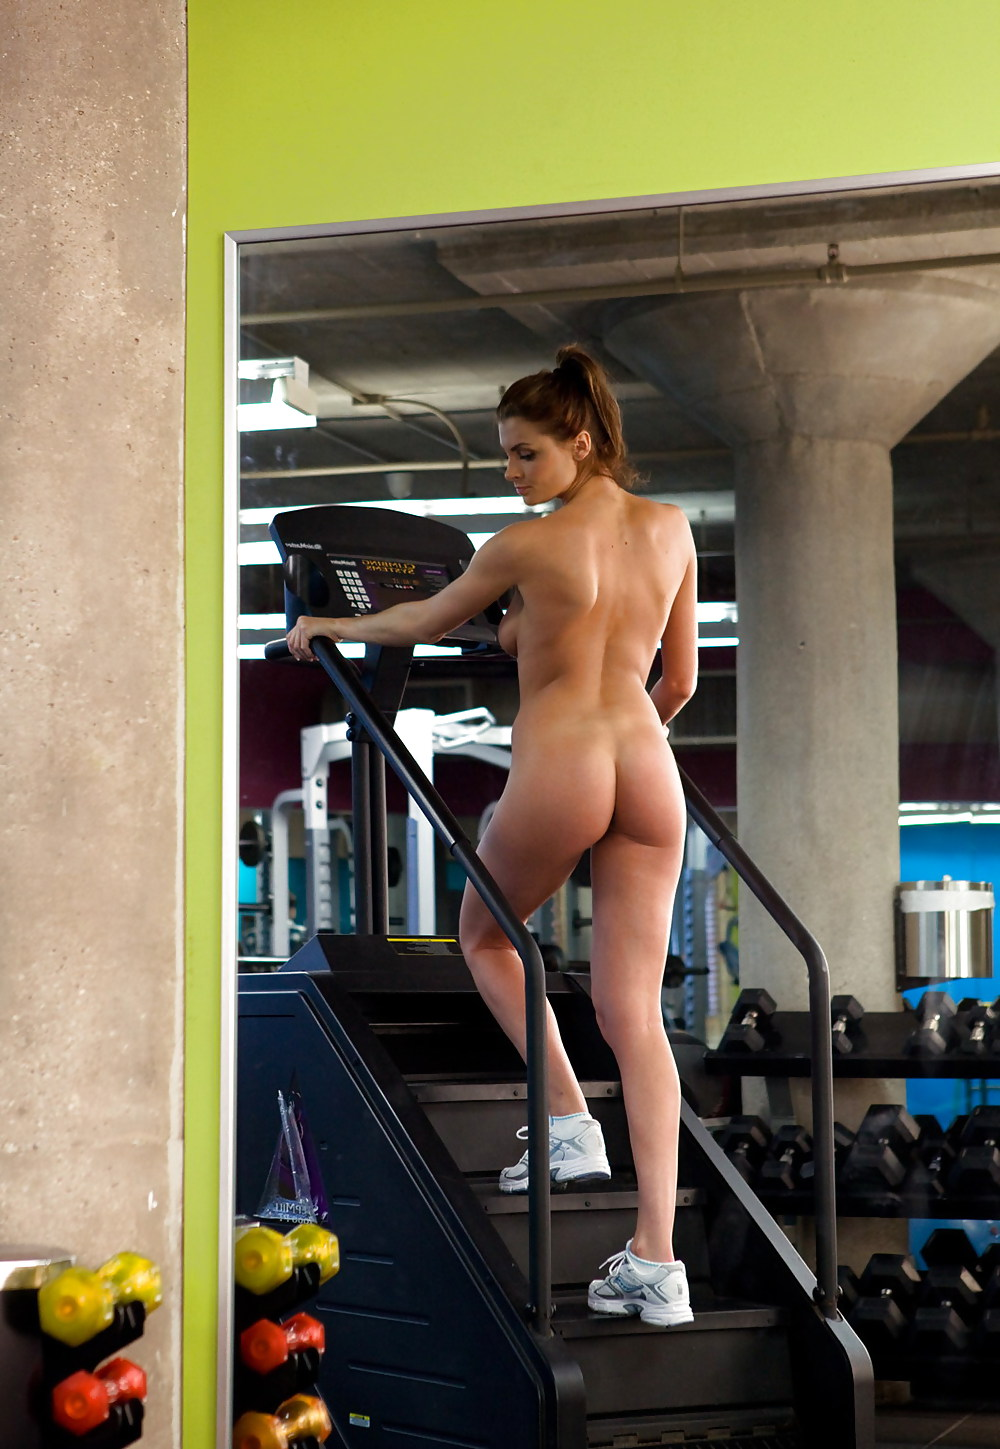 Nude Woman Naked Workout